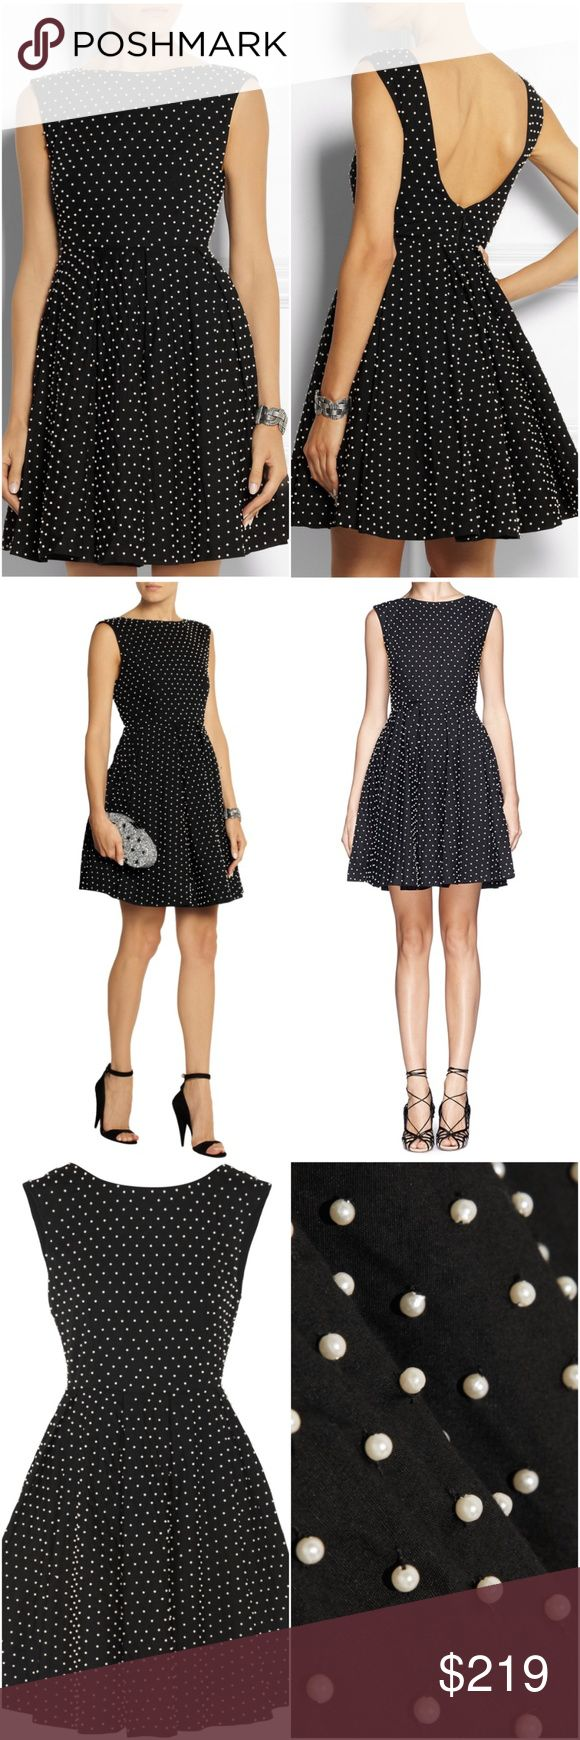 Alice + Olivia Black Faux Pearl-Embellished NWOT Alice + Olivia Black Faux Pearl-Embellished Cotton Mini Dress Little black dress has been embellished with hundreds of lustrous faux pearls and lined throughout for a smooth fit. This style is nipped-in at the waist and cut with a flattering scoop back. The softly pleated skirt is supported by a discreet underlay for volume. - Black cotton - Zip fastening along back - 100% cotton; lining1: 97% polyester, 3% spandex; lining2: 57% nylon, 43%…